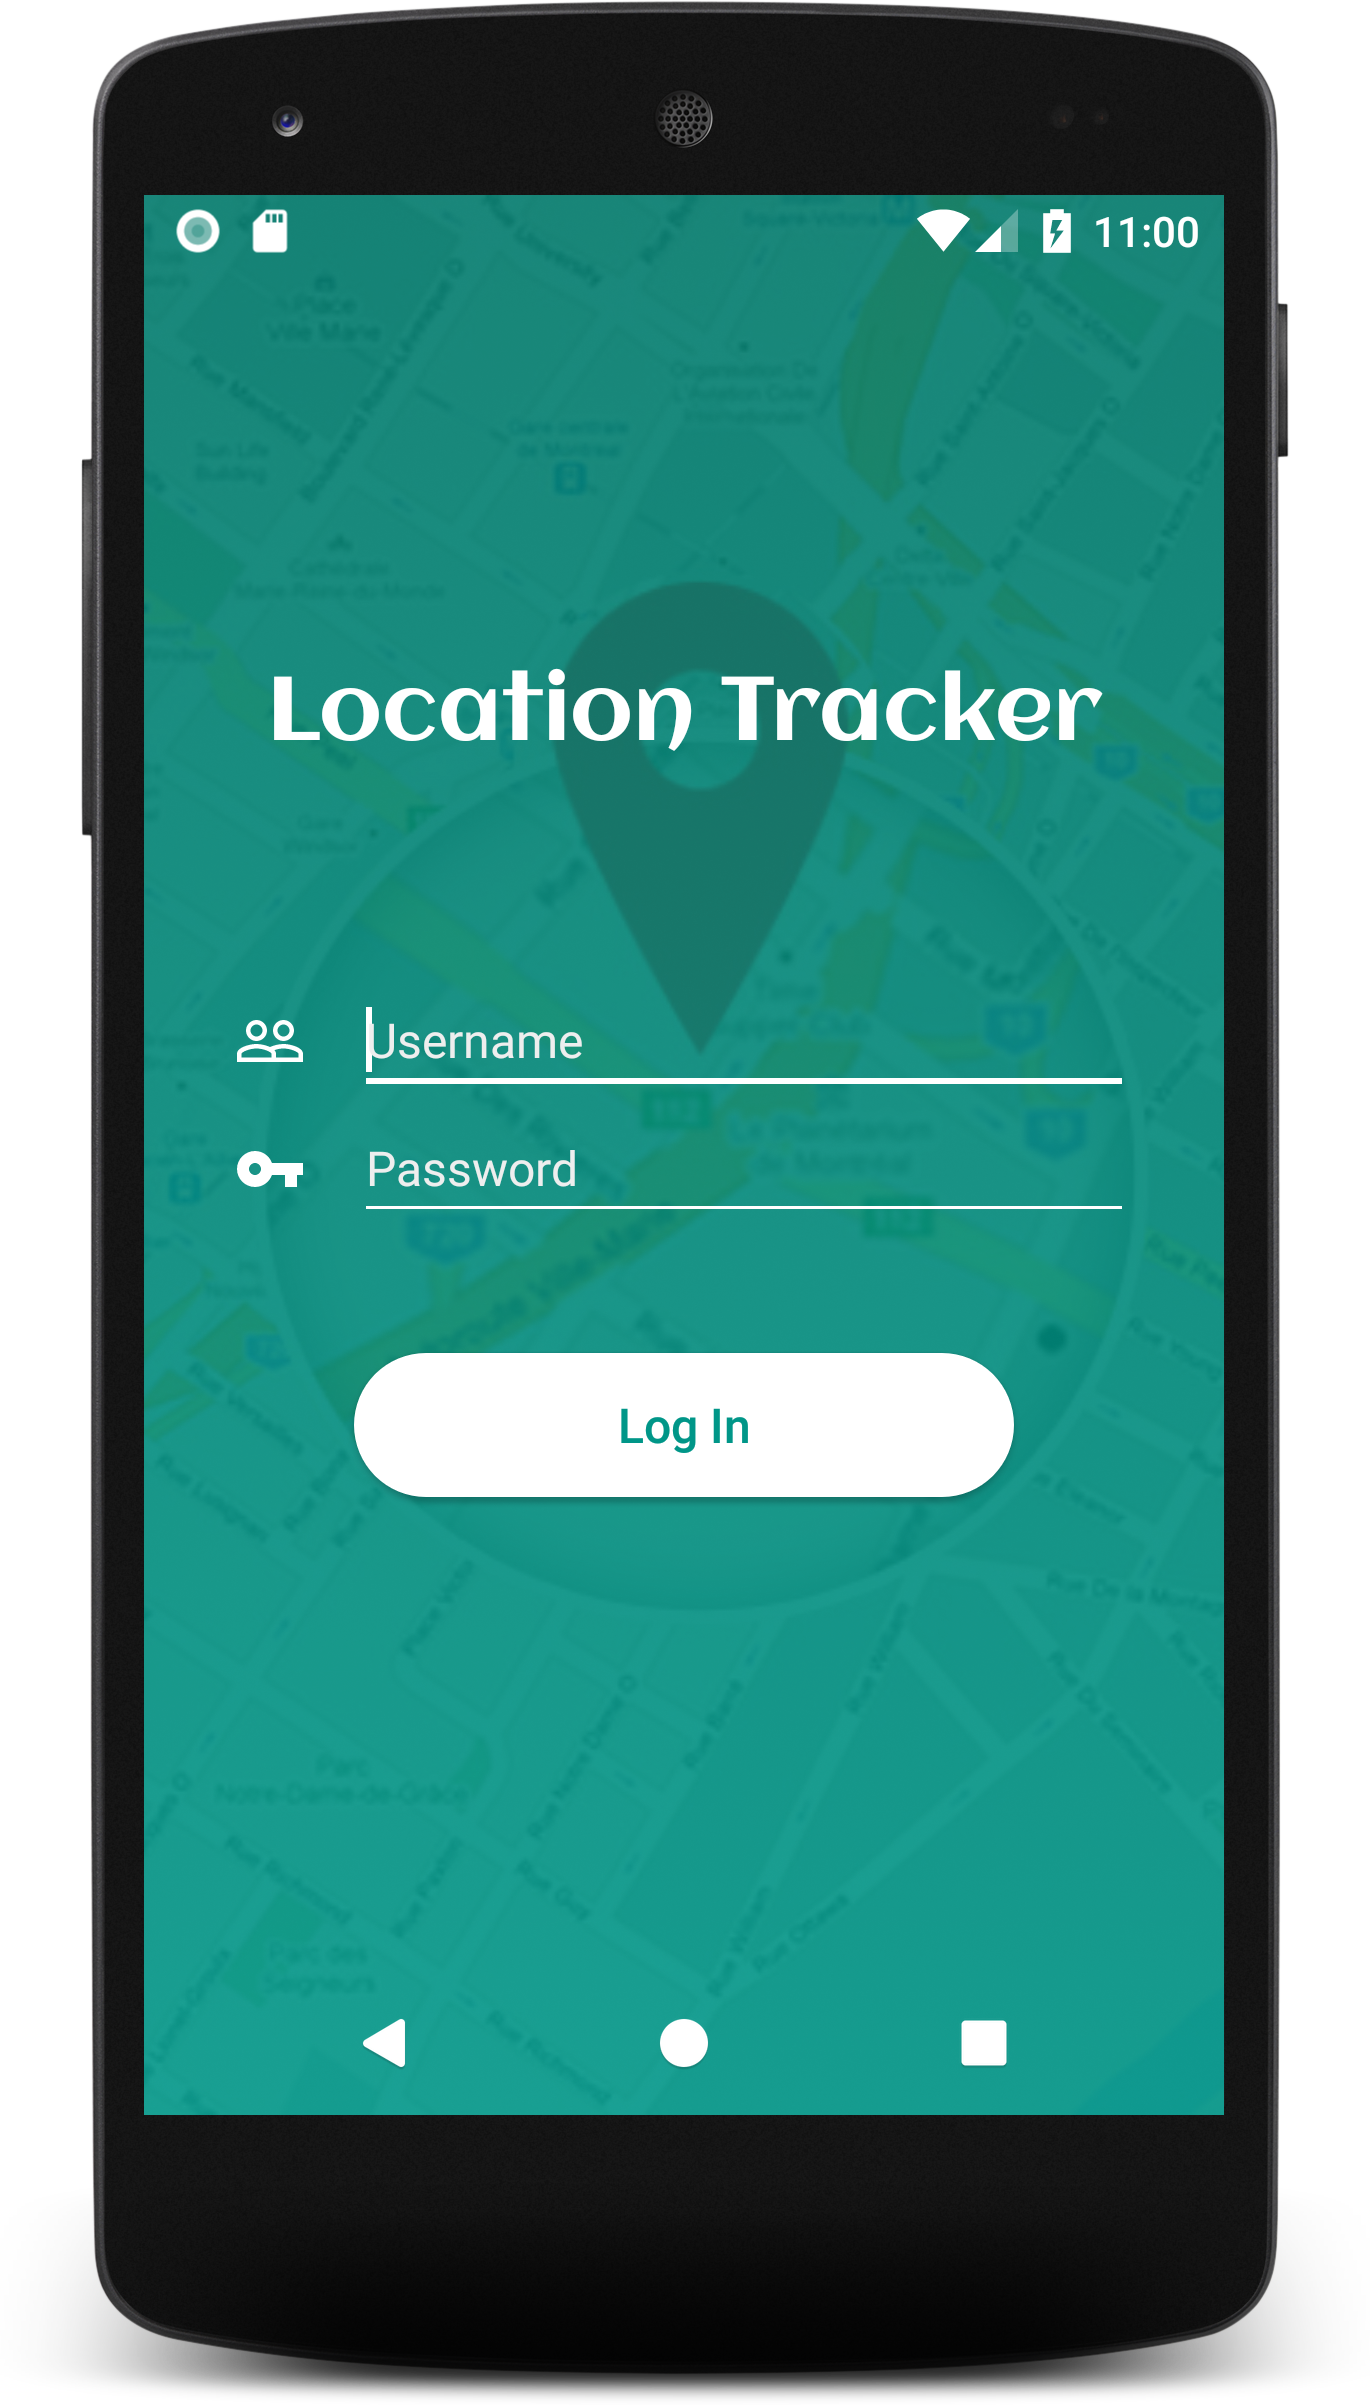 Live Tracking System android app in Pakistan